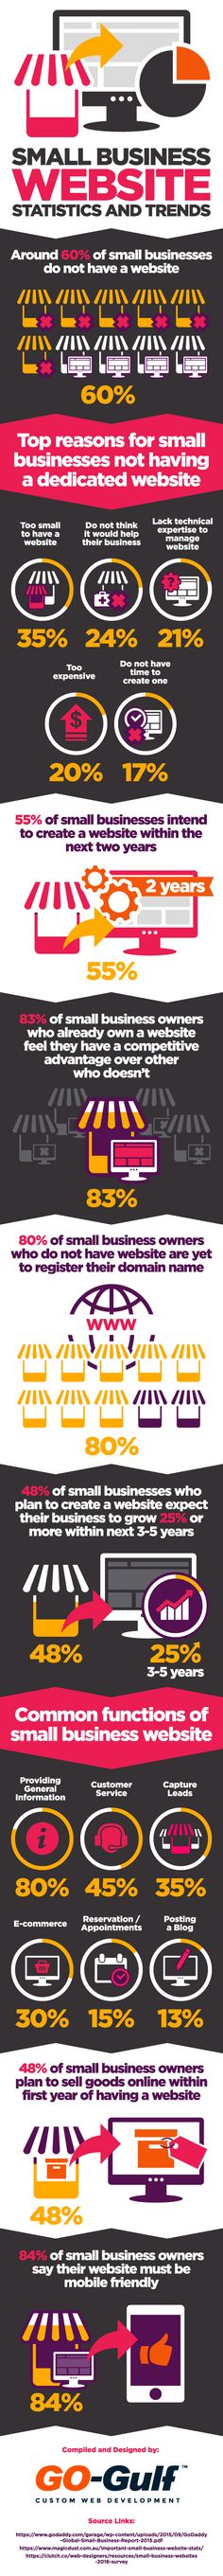 Small Business Website Statistics and Trends - #Infographic